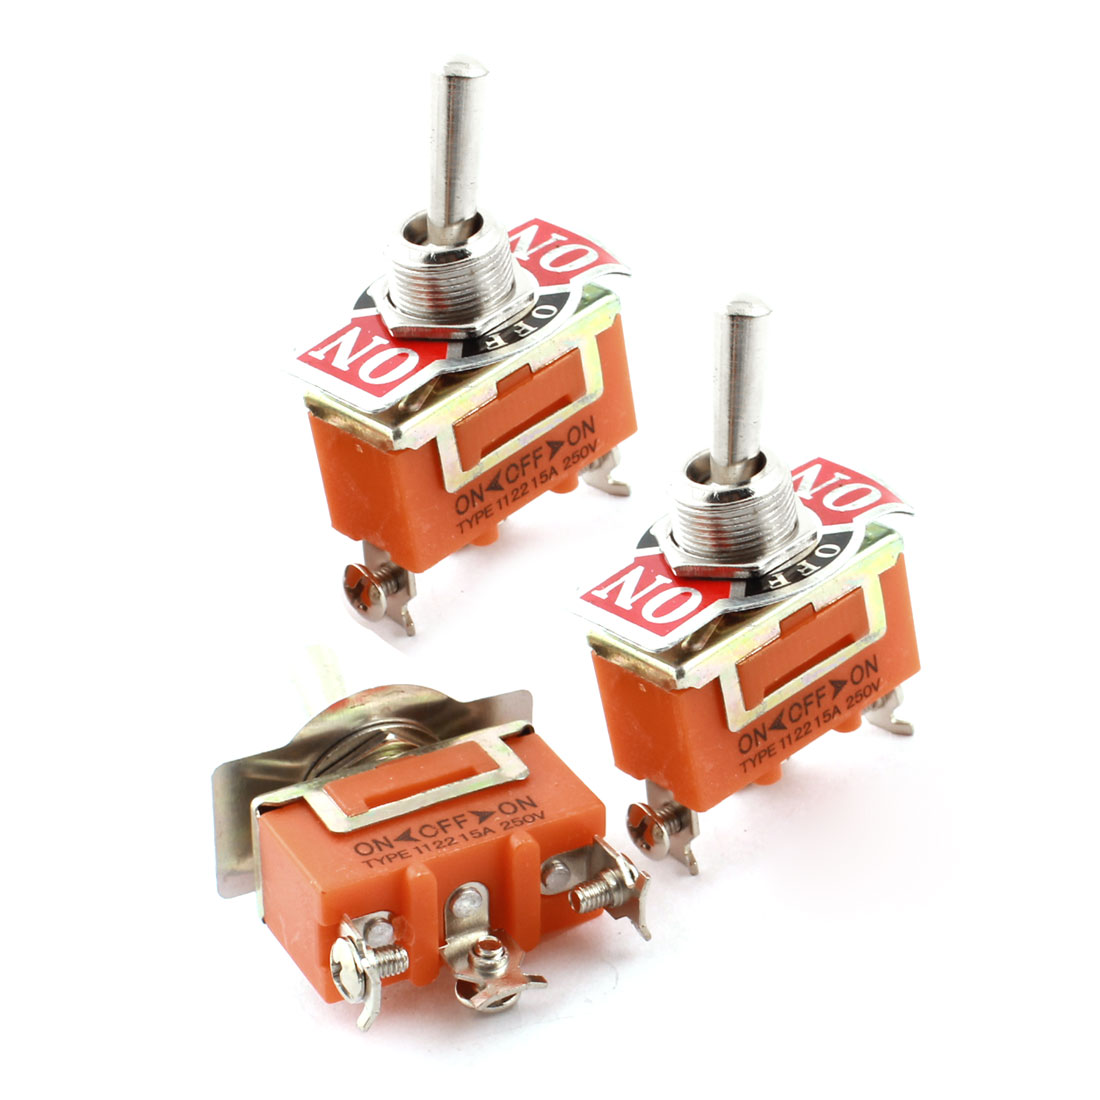 3PCS AC250V 15A ON-OFF-ON 3 Screw Terminals Three Position SPST Locking Toggle Switch